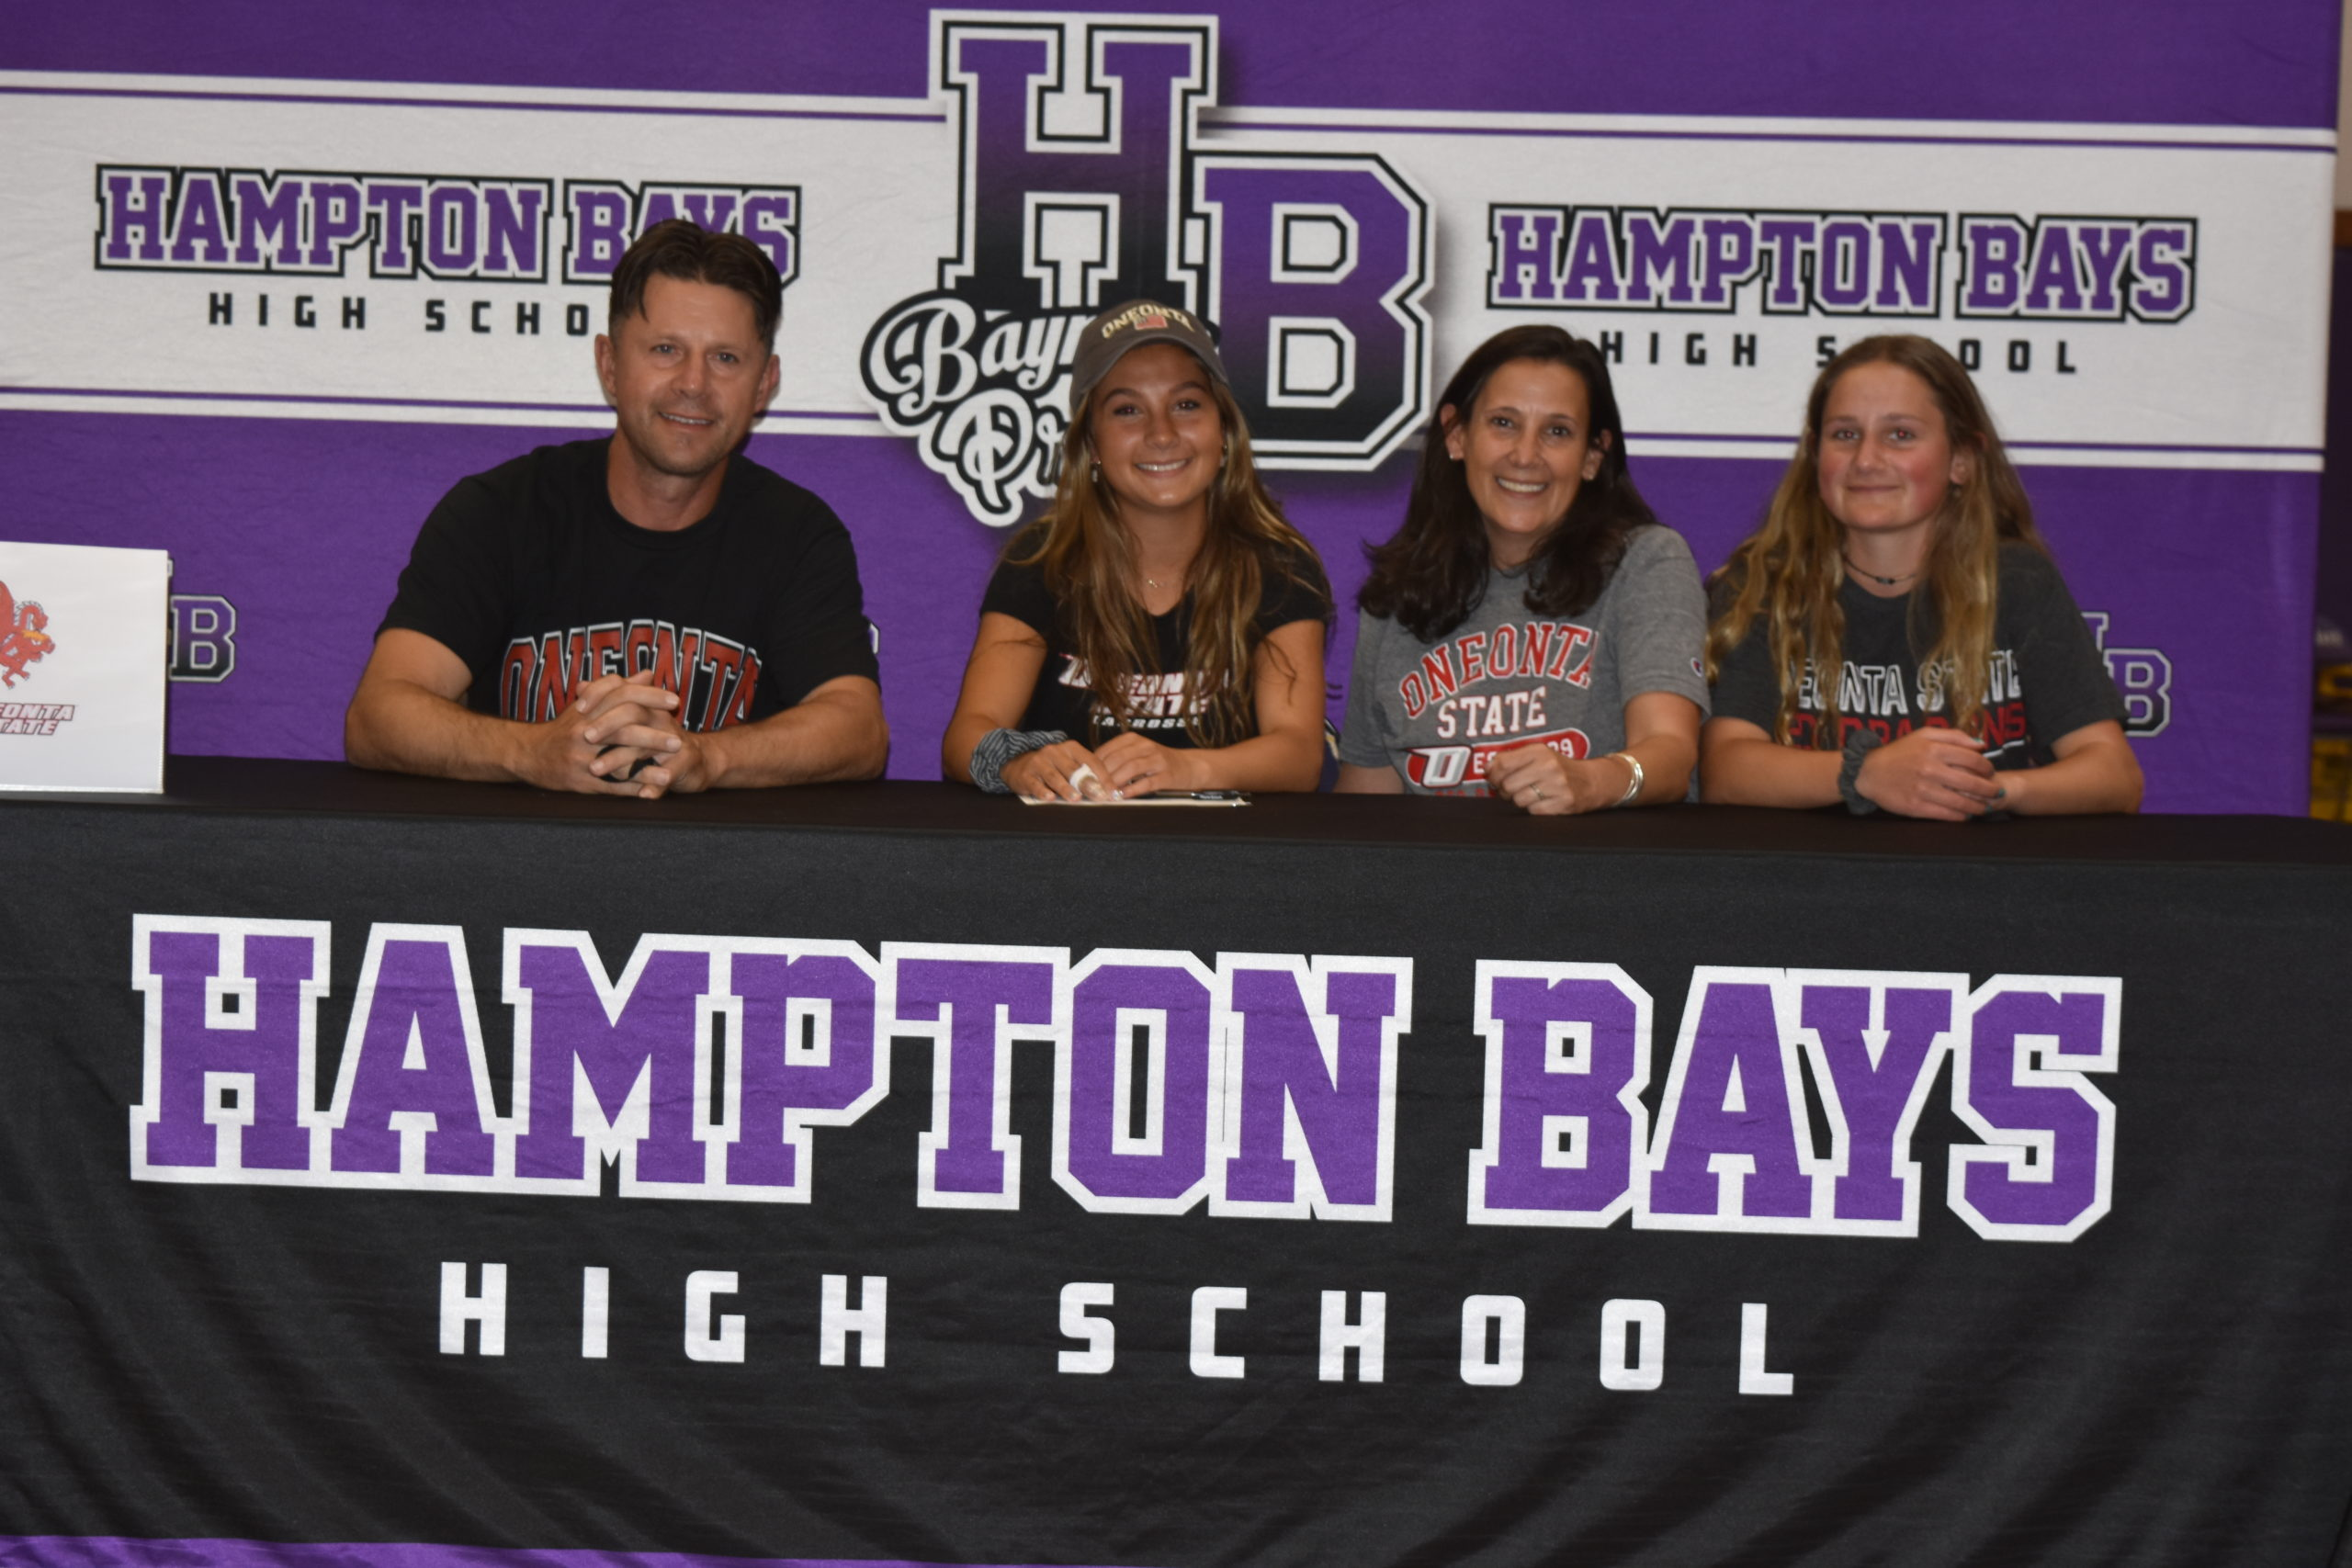 From left, Vinny, Cassidy, Dawn and Jamie Moore. Cassidy Moore signed her letter of intent to play lacrosse at SUNY Oneonta on June 1.